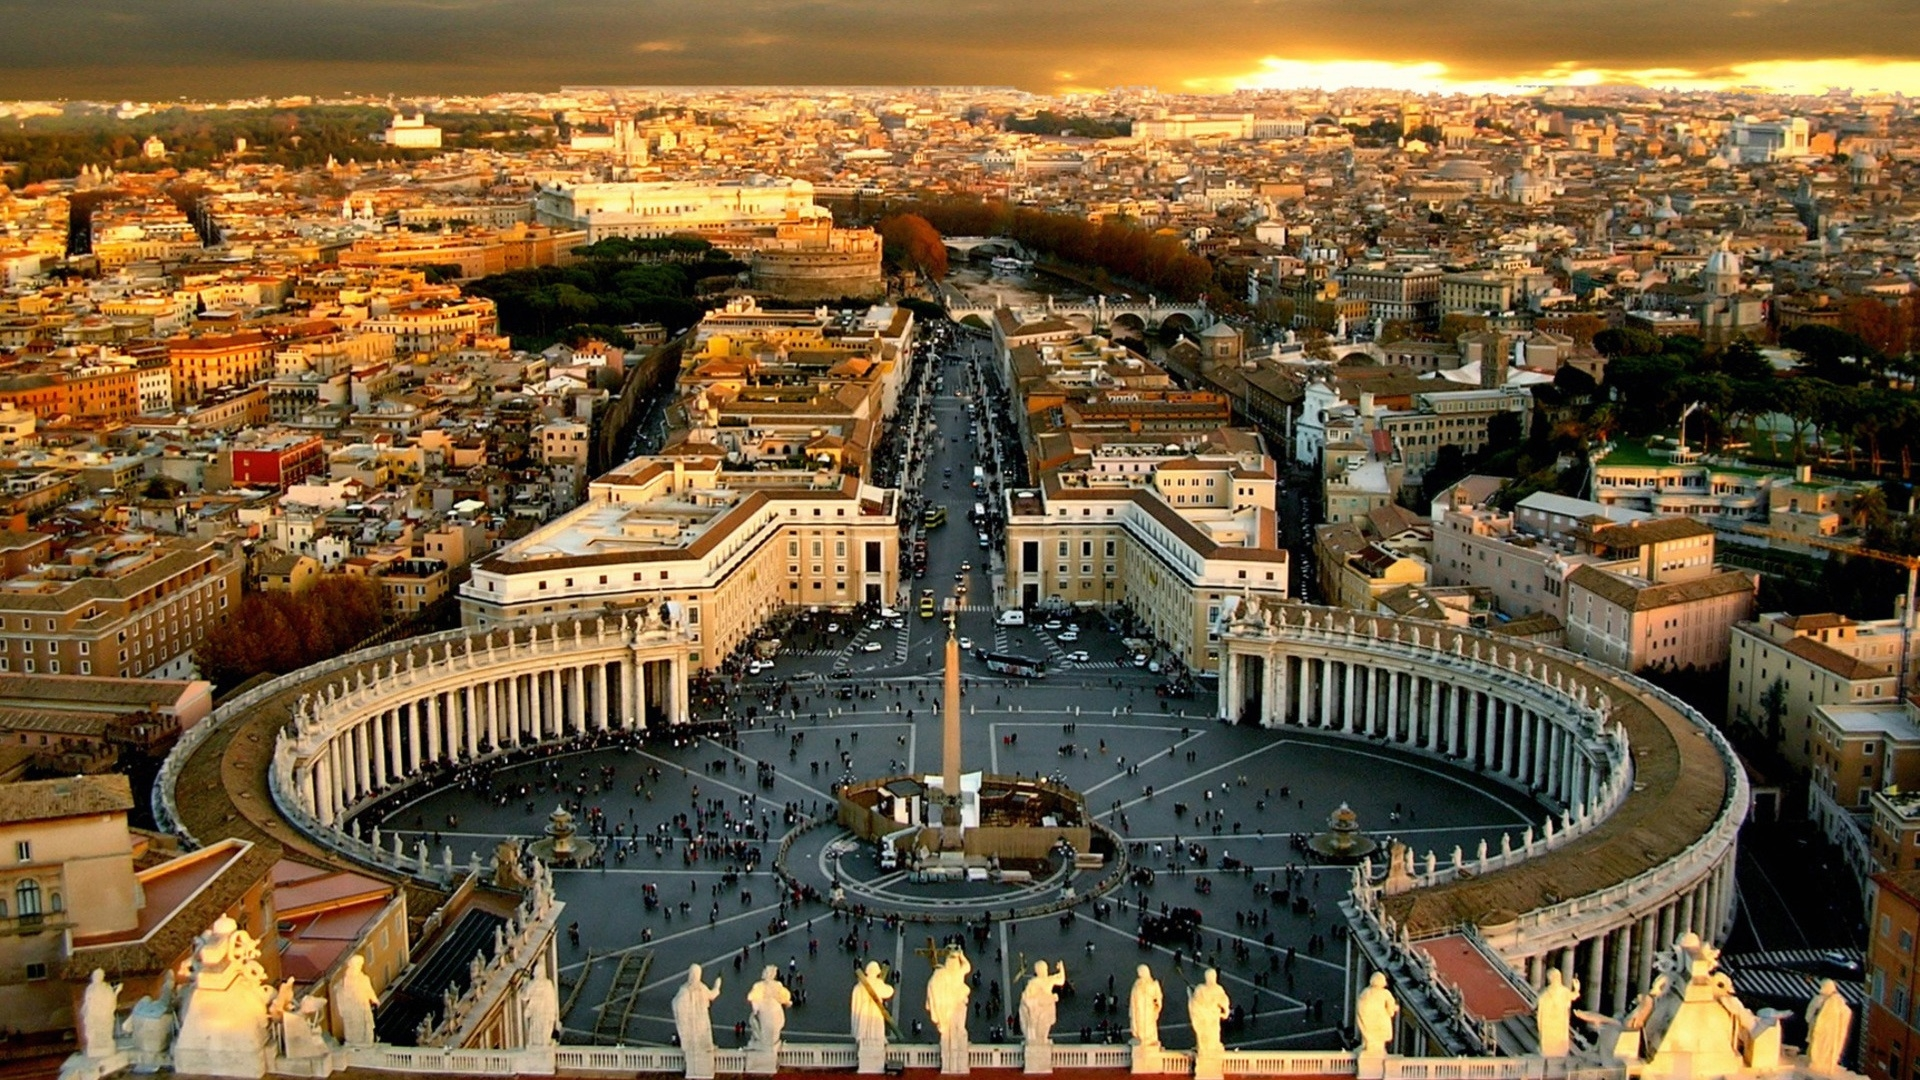 A spectacular view of St. Peter's Square from above